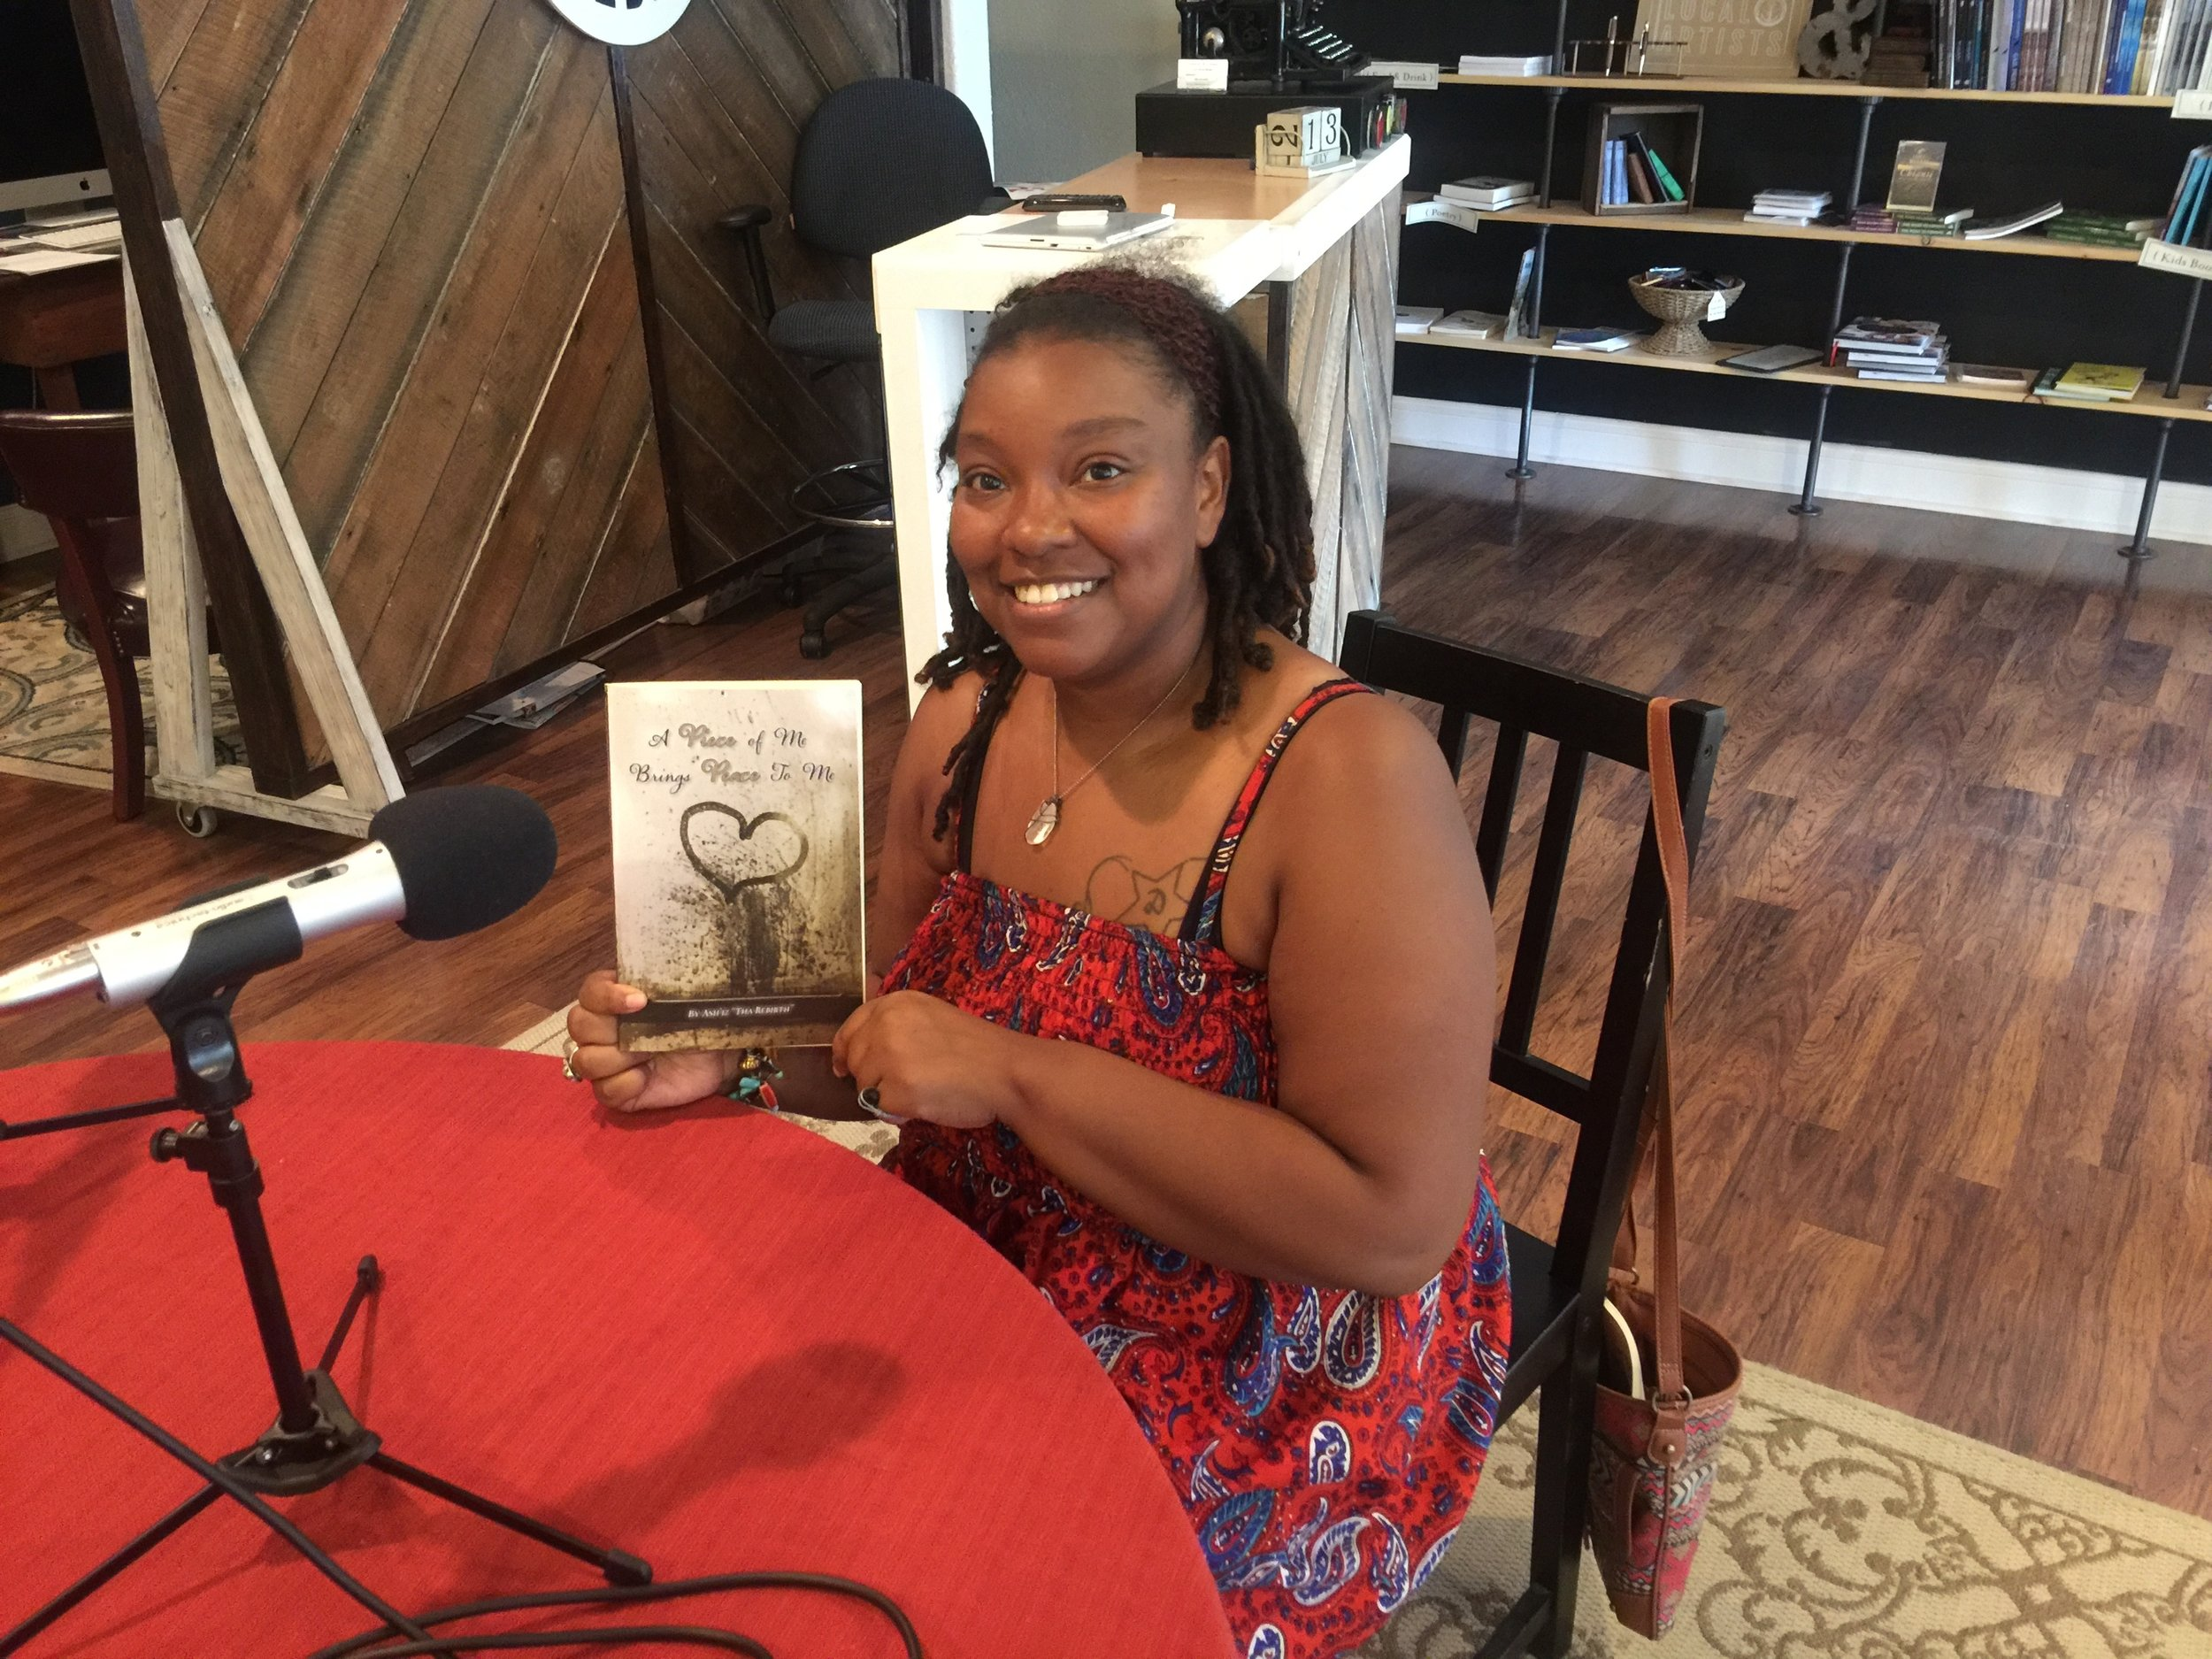 Ashley Cuffee and her newly released book of poetry. A Piece of Me Brings Peace To Me.